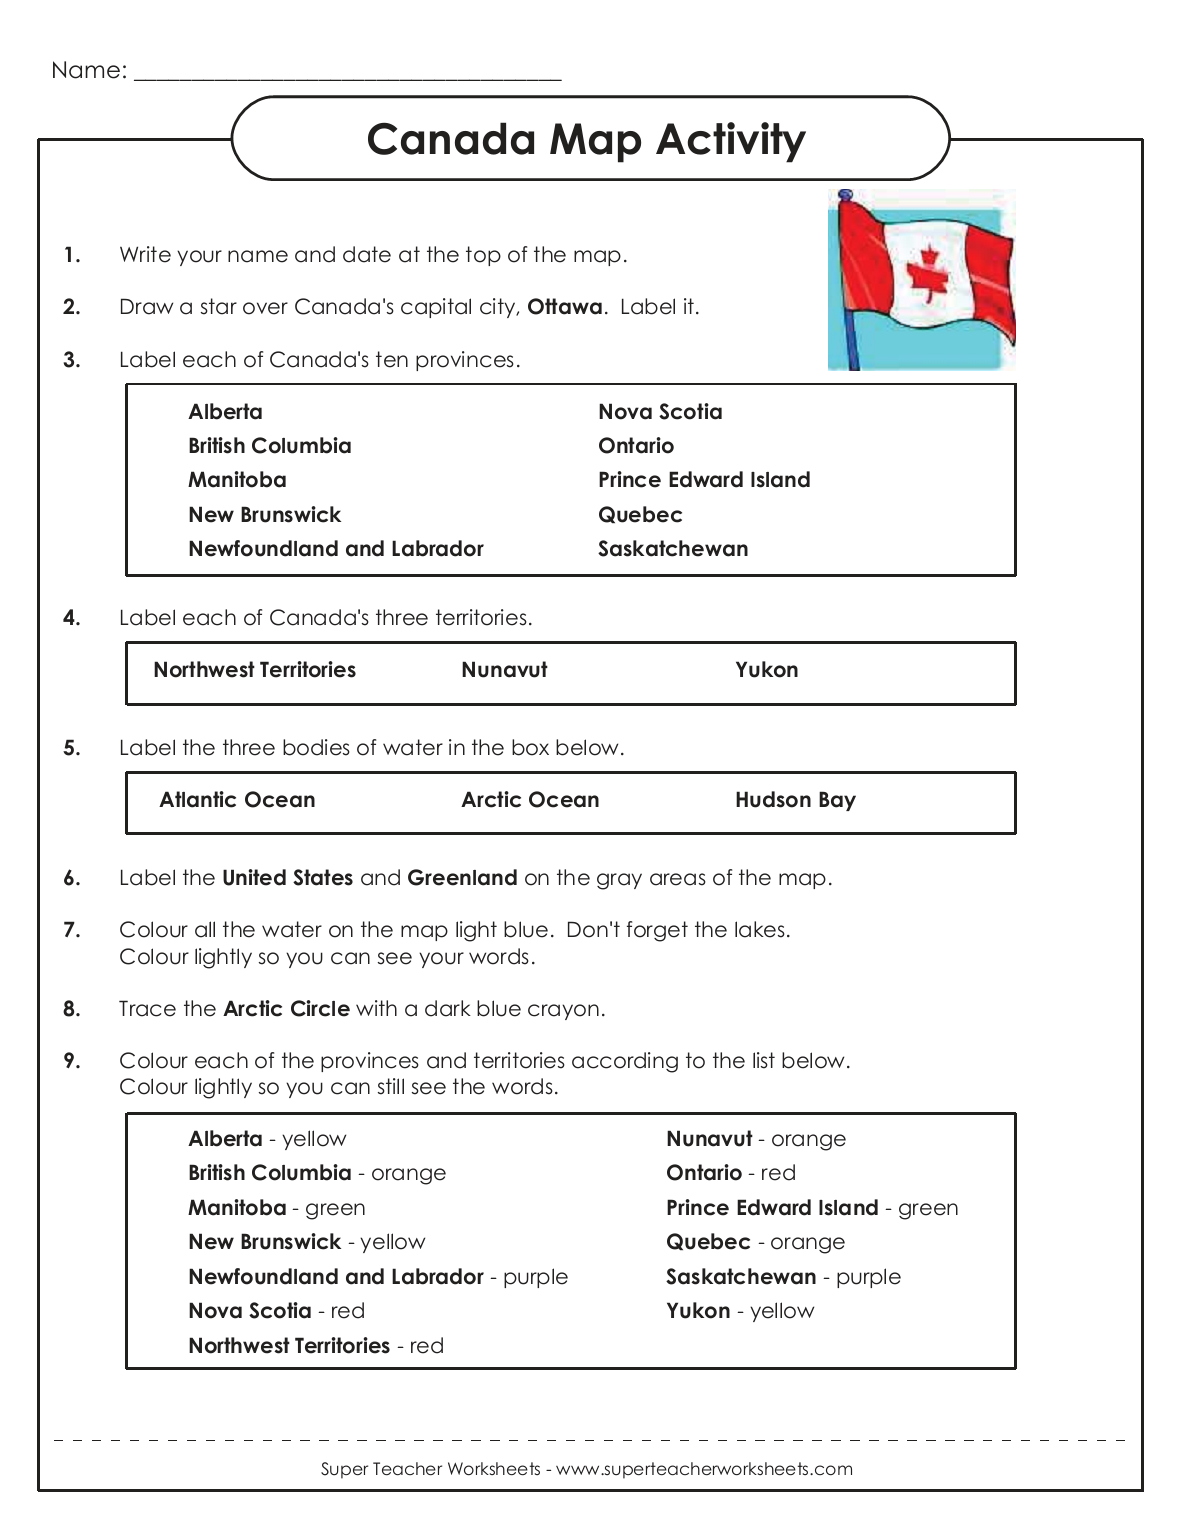 Workbooks worksheets for grade 4 social studies : Digital Learning Unit Plan - Grade 4 Social Stu...- Mind Map